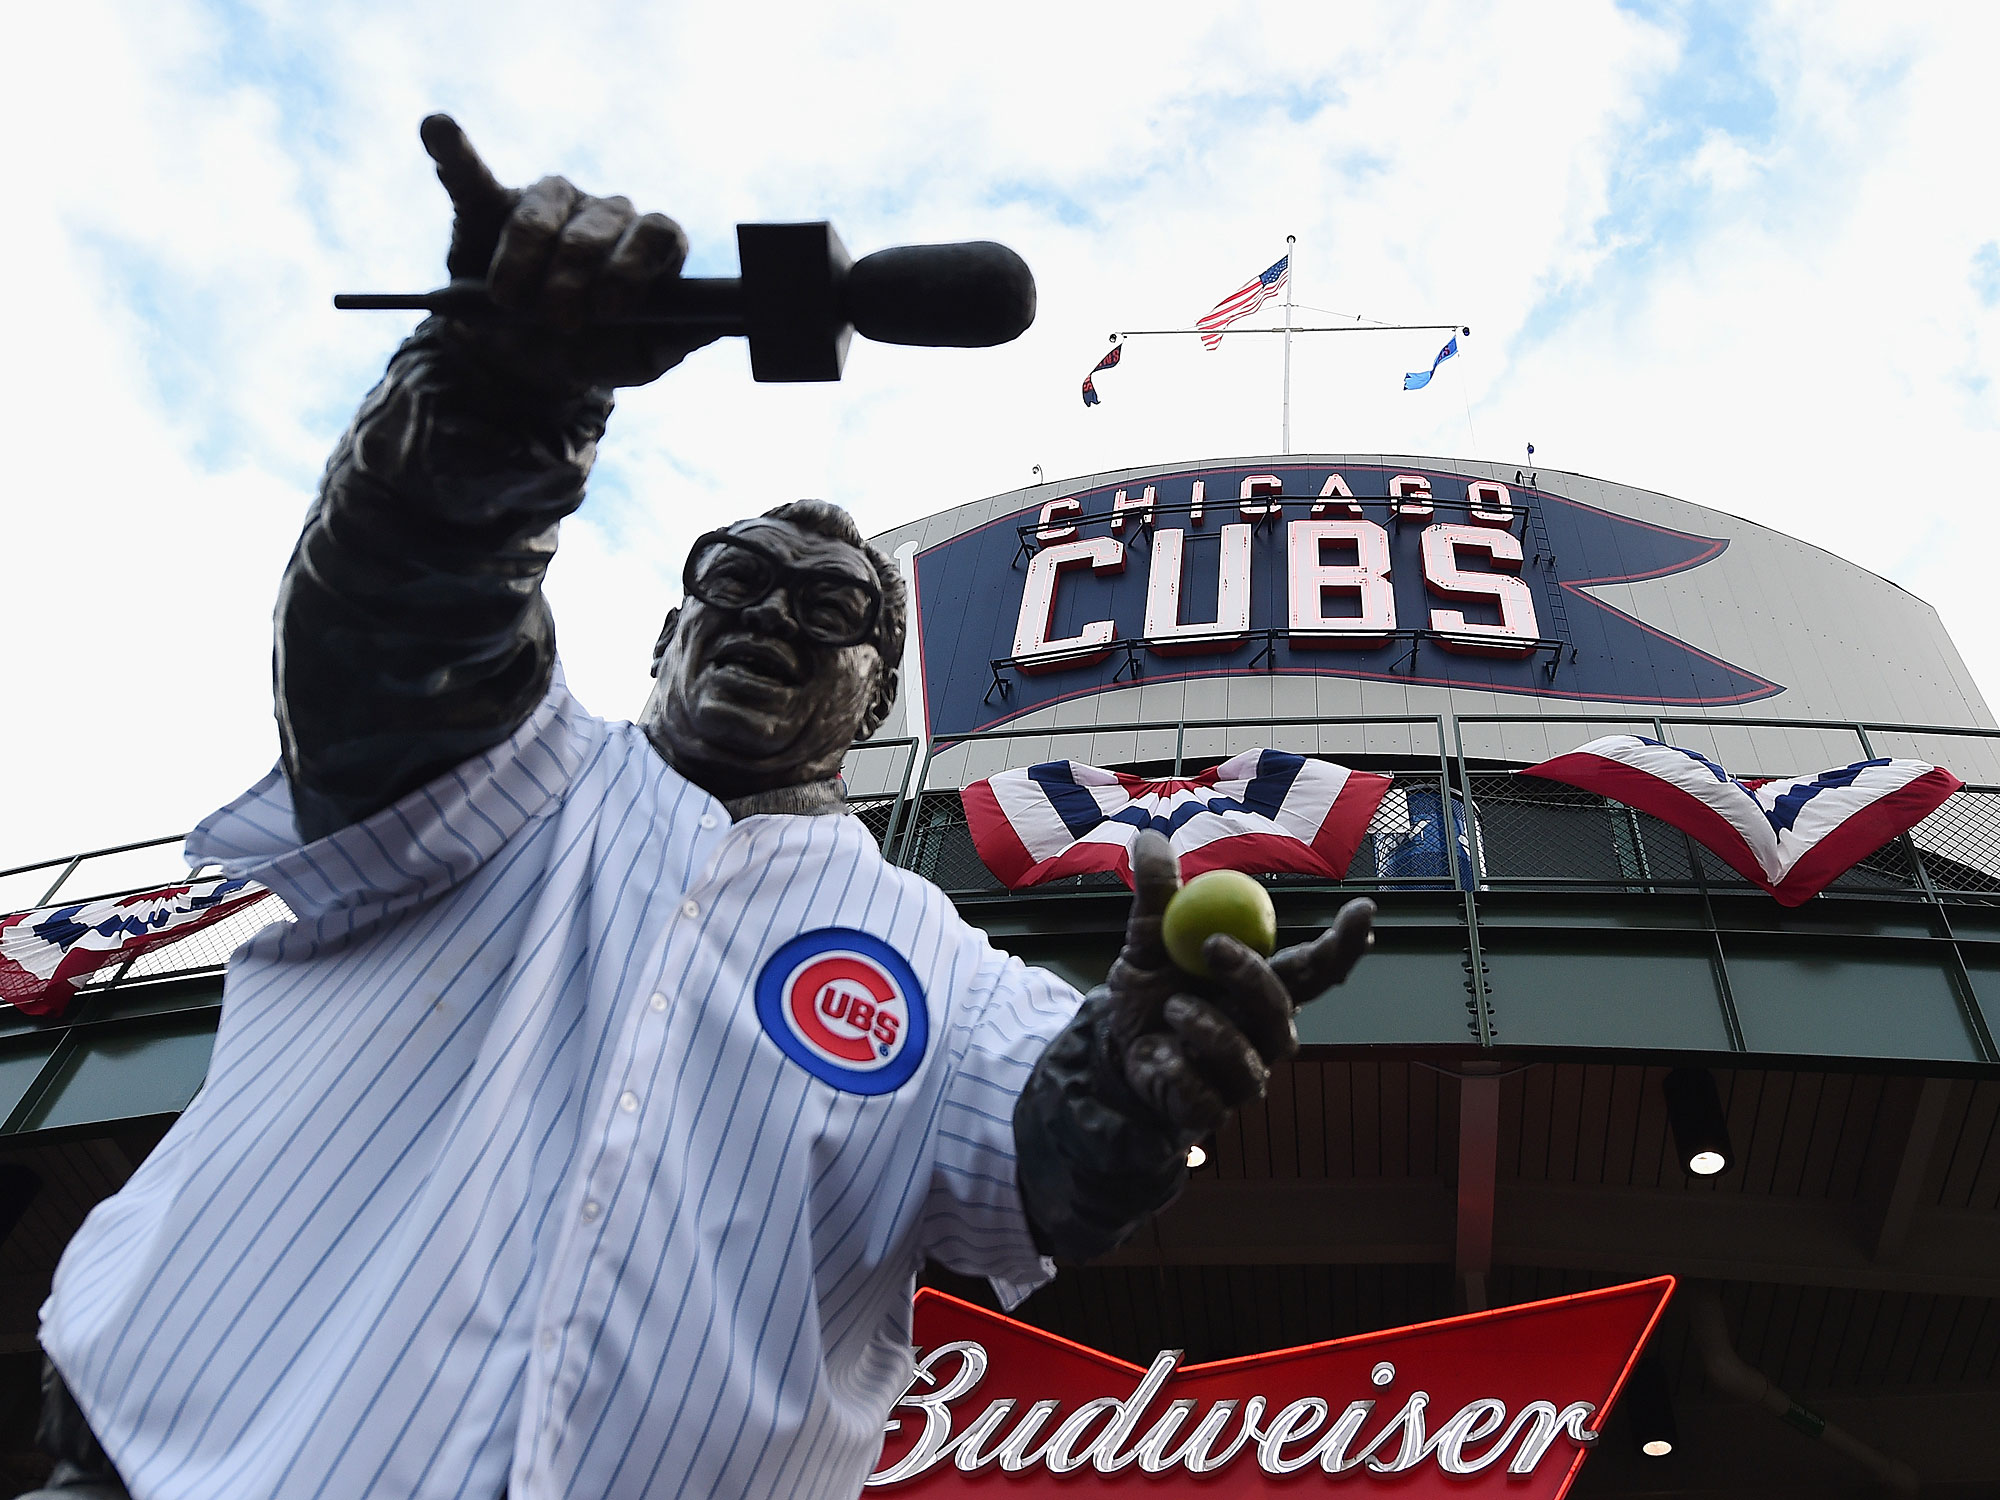 Harry Caray statue, Chicago Cubs